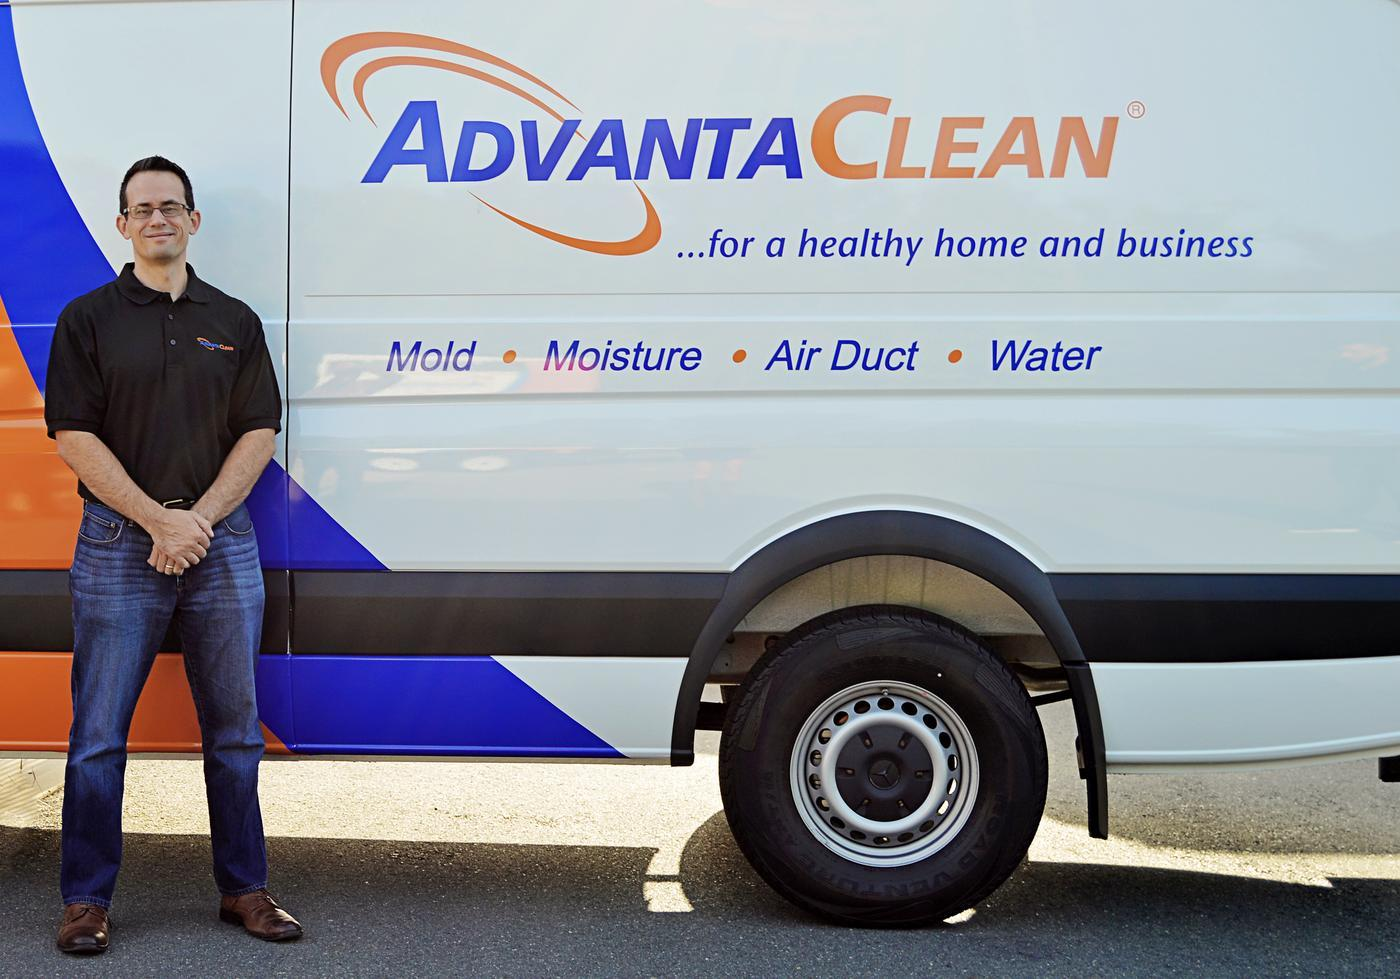 Advanta Clean owner